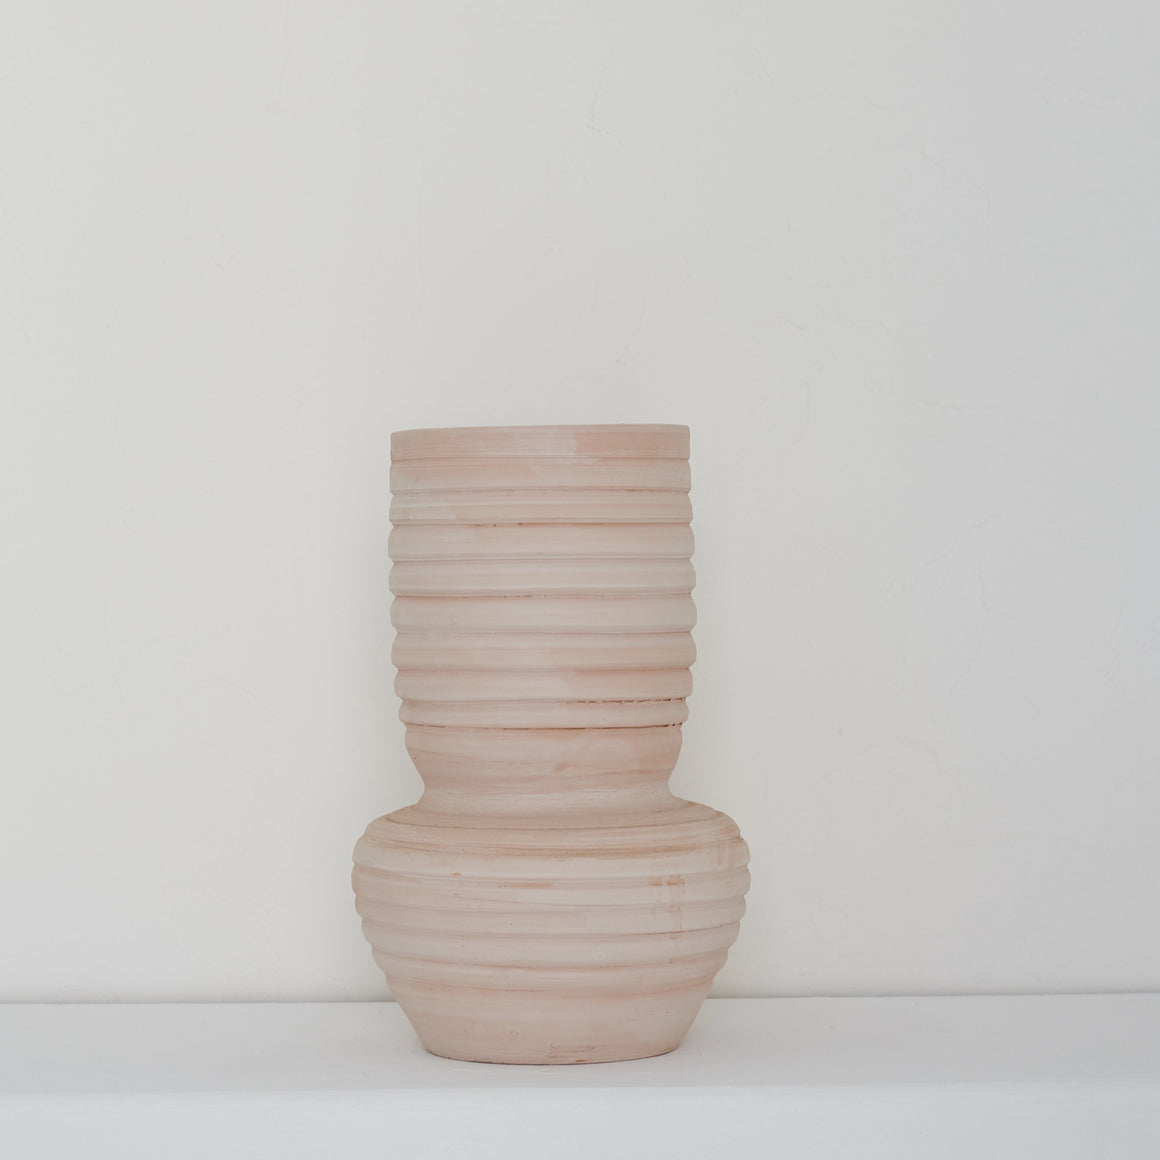 Earth Collection - Hati Vase, White Washed /سيراميك